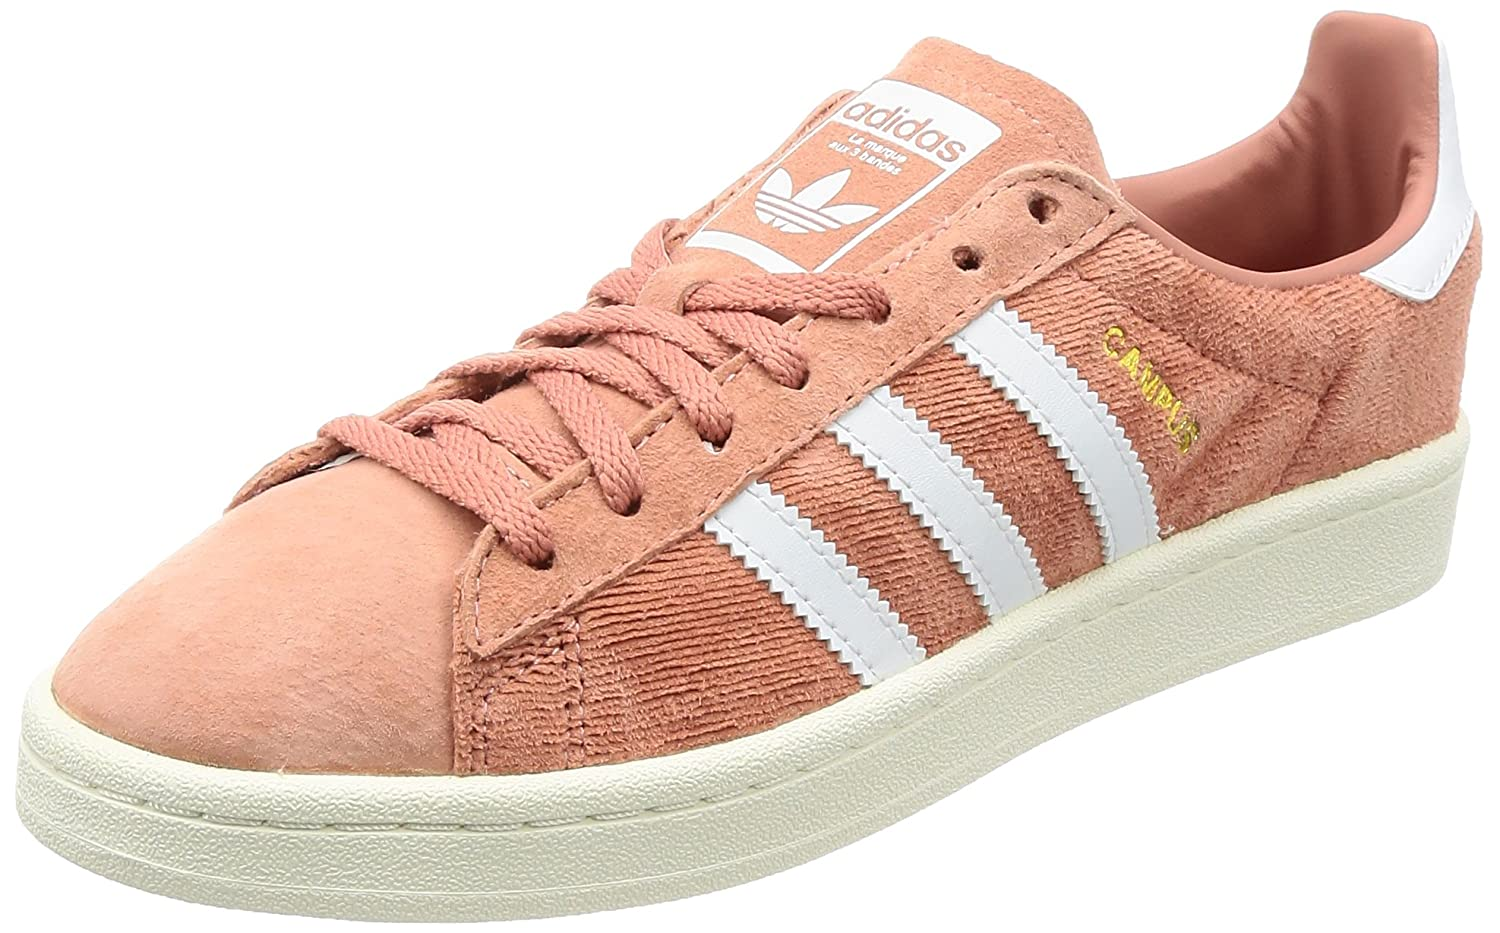 adidas Damen Campus W Fitnessschuhe, Mehrfarbig (Crystal White S16/Crystal White S16/Icey Pink F17), 41 1/3 EU